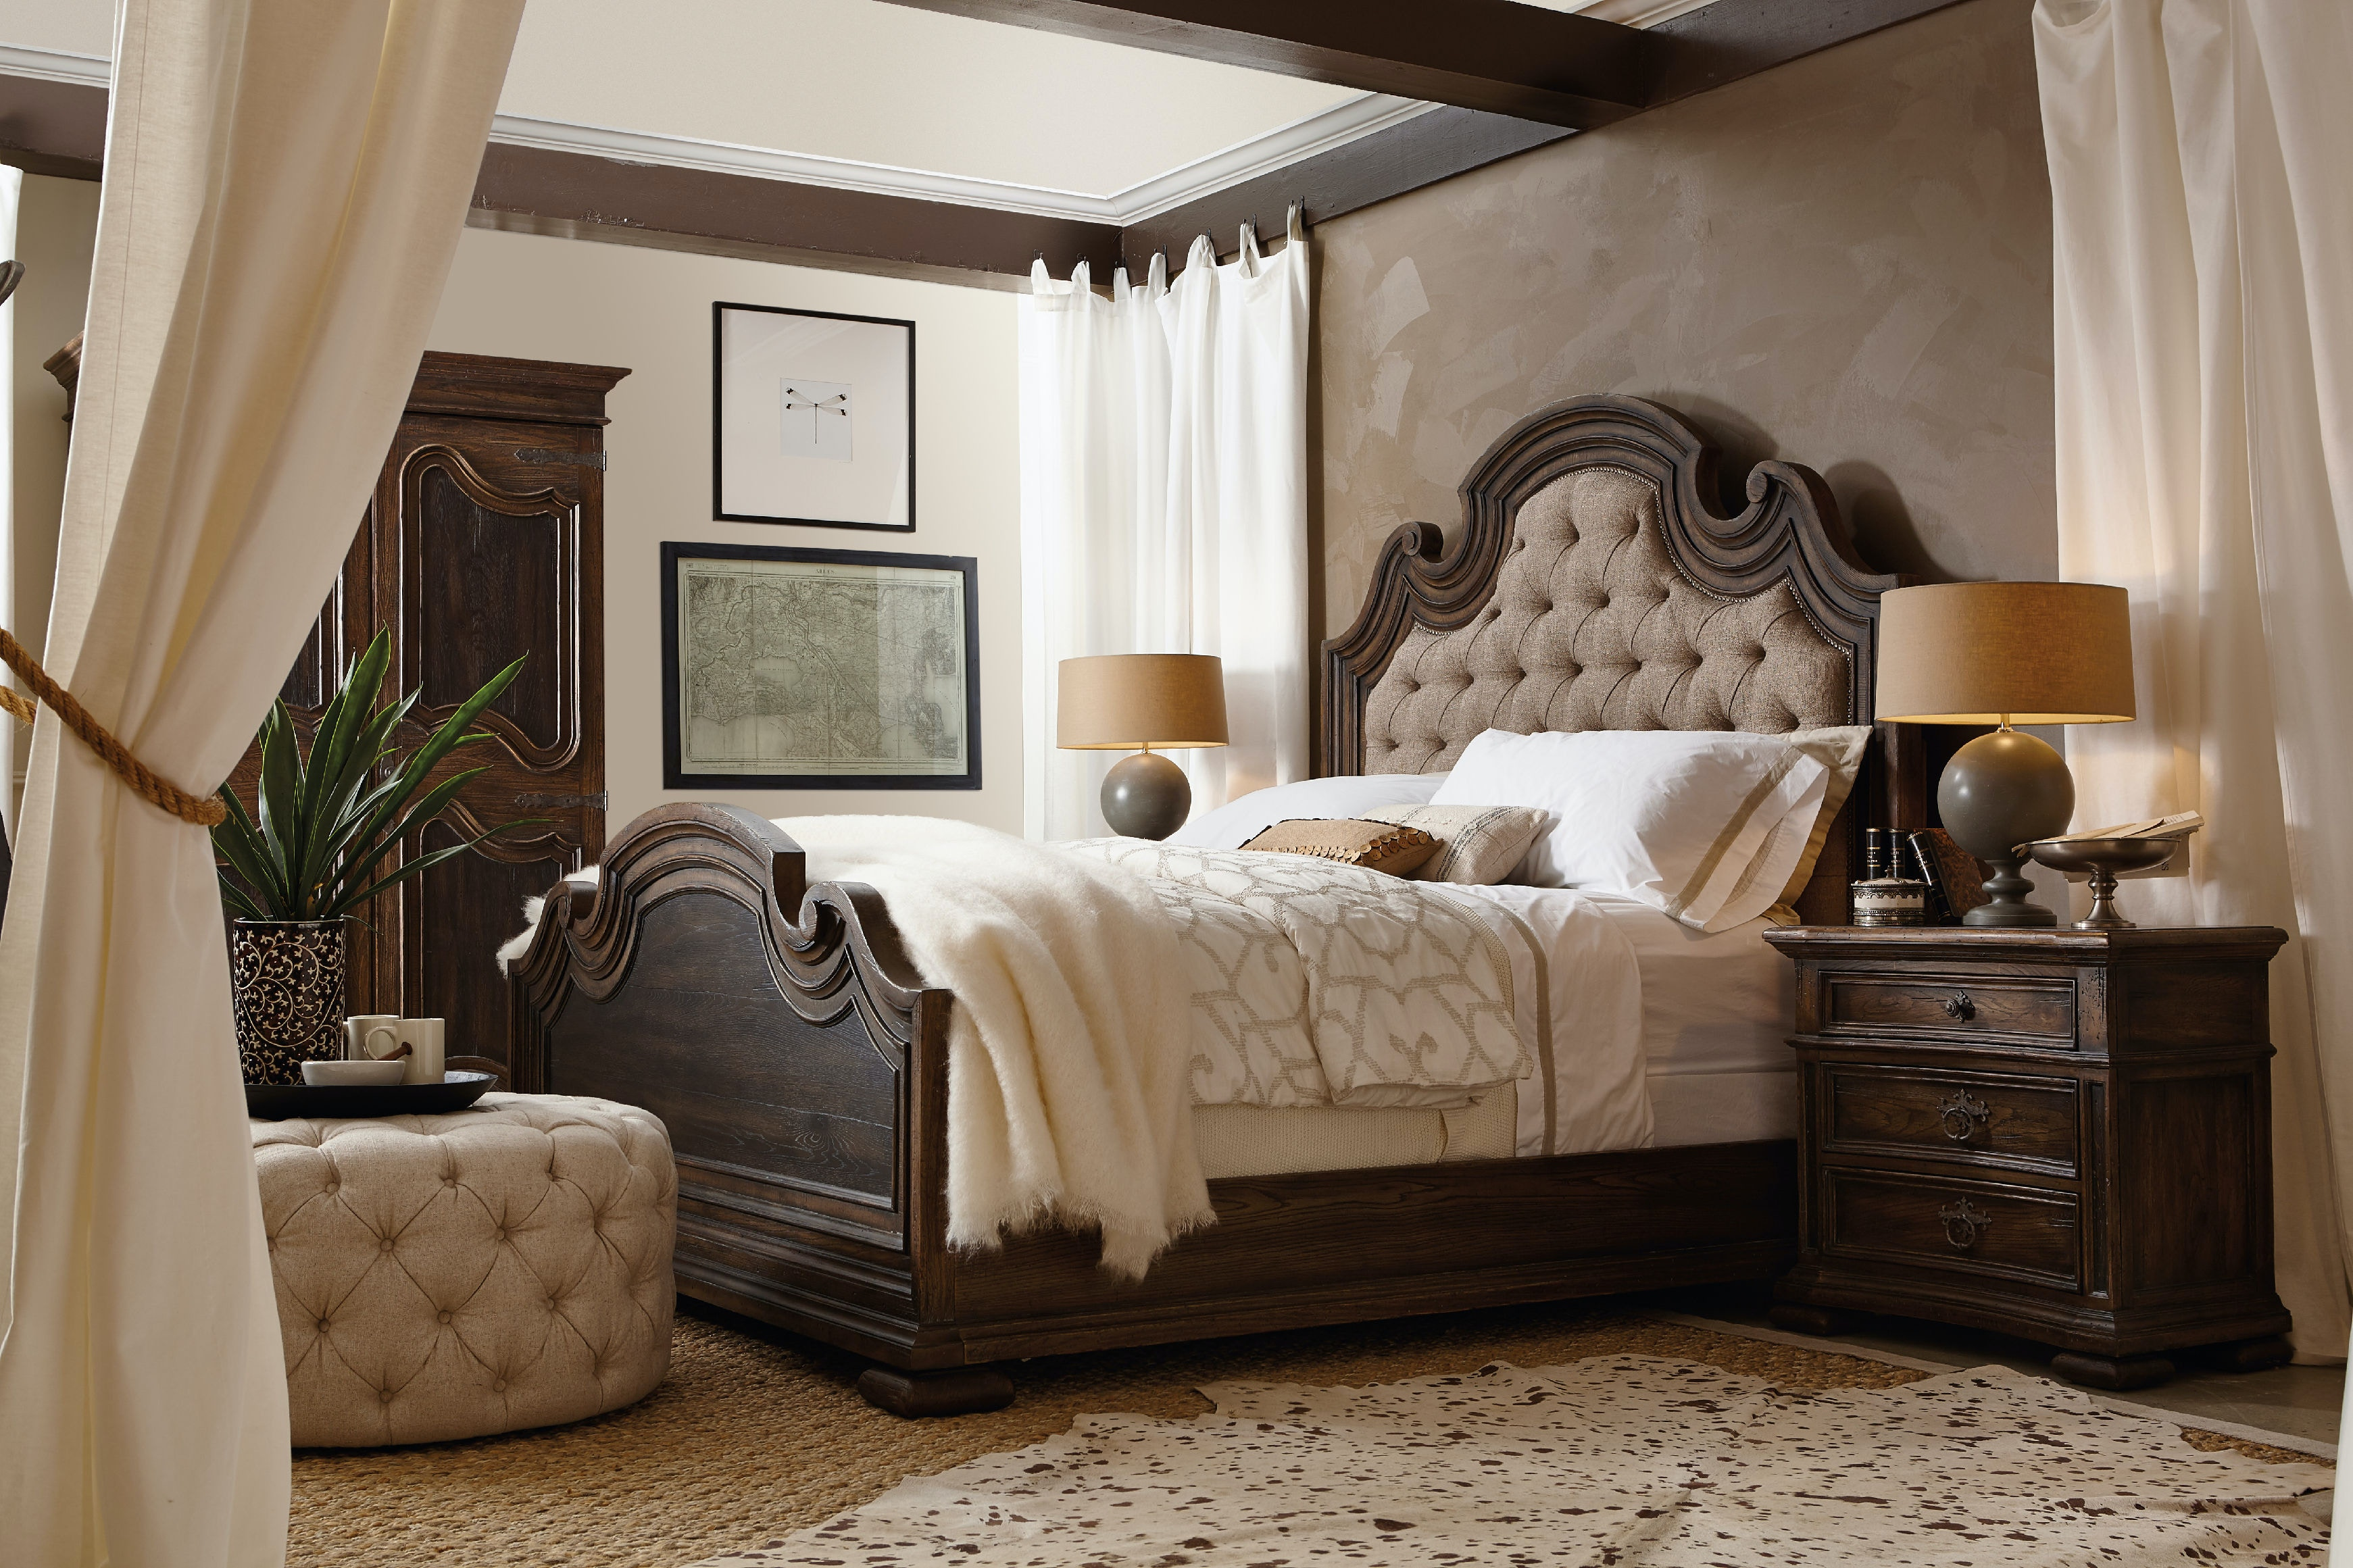 Hooker Furniture Bedroom Fair Oaks King Upholstered Bed 5960 90866 Multi Georgian Furnishing